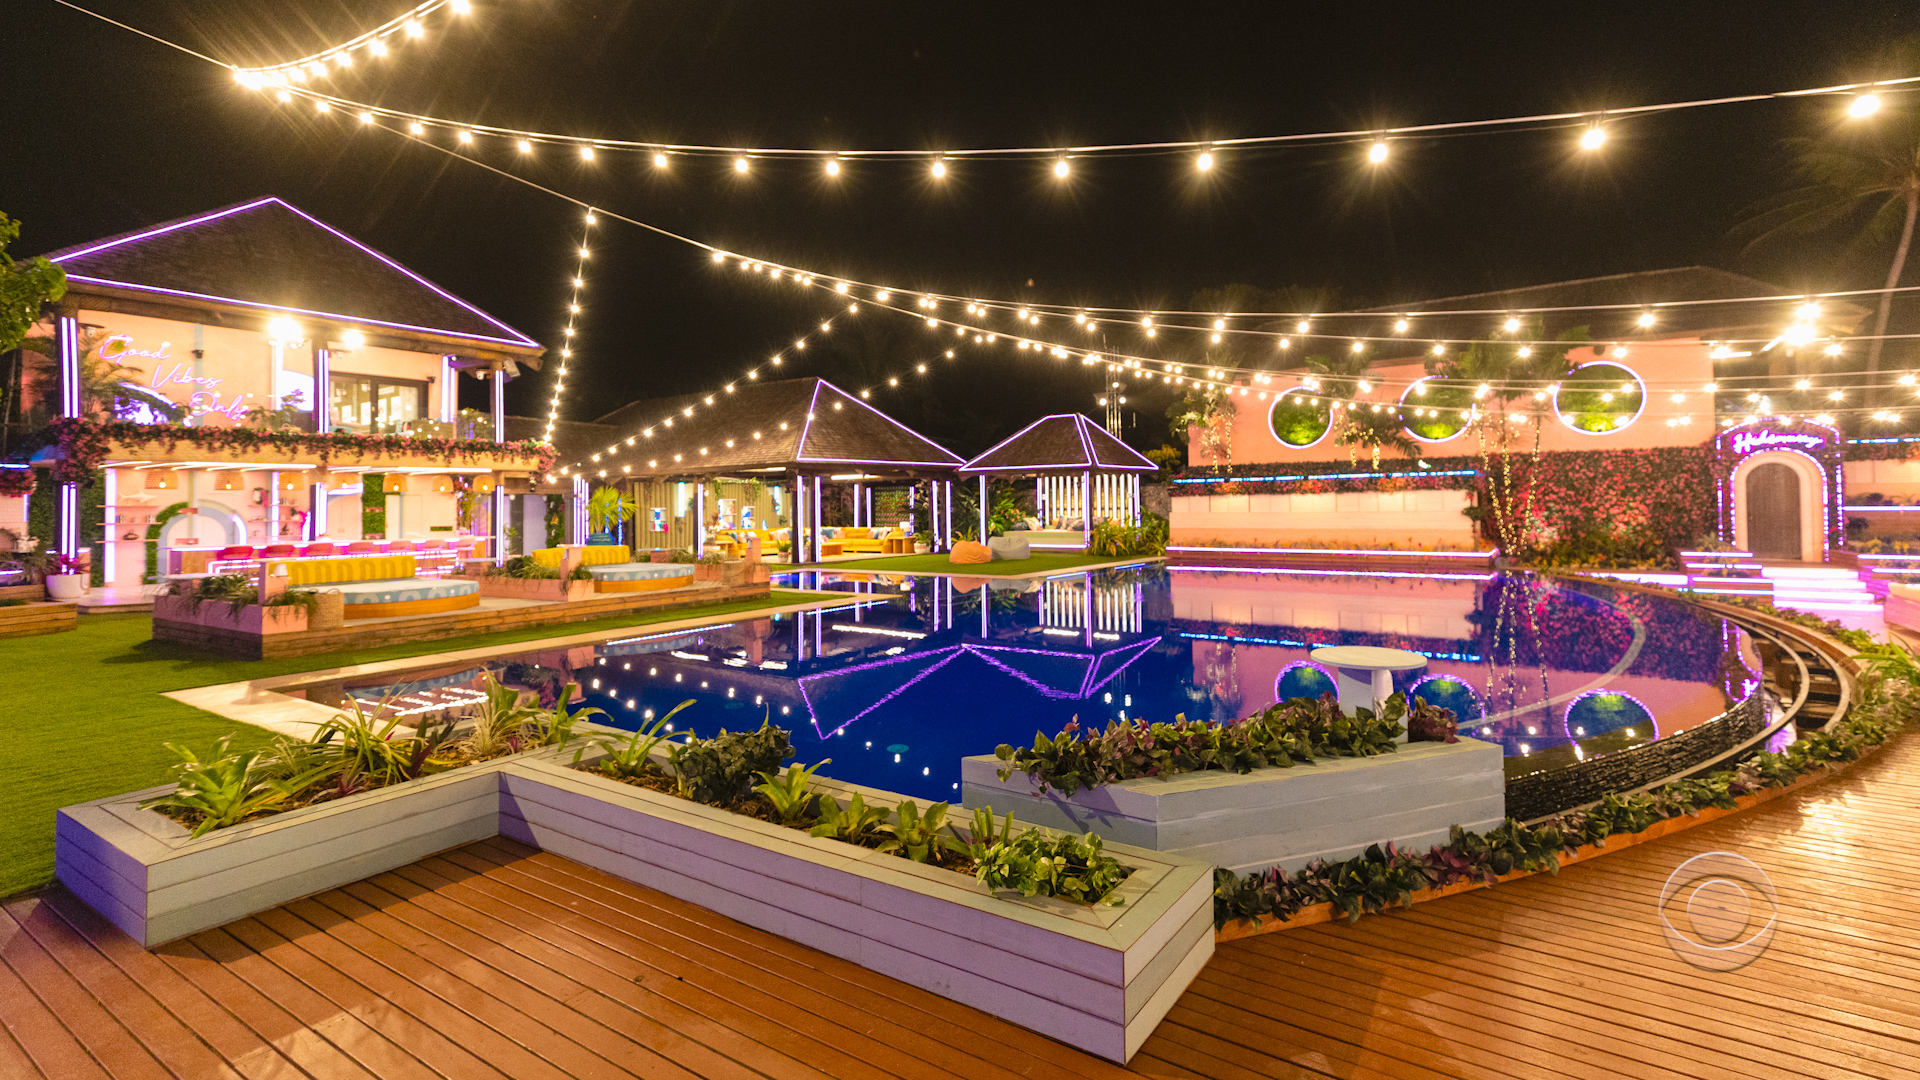 Love Island USA 4 - Outdoor area nighttime